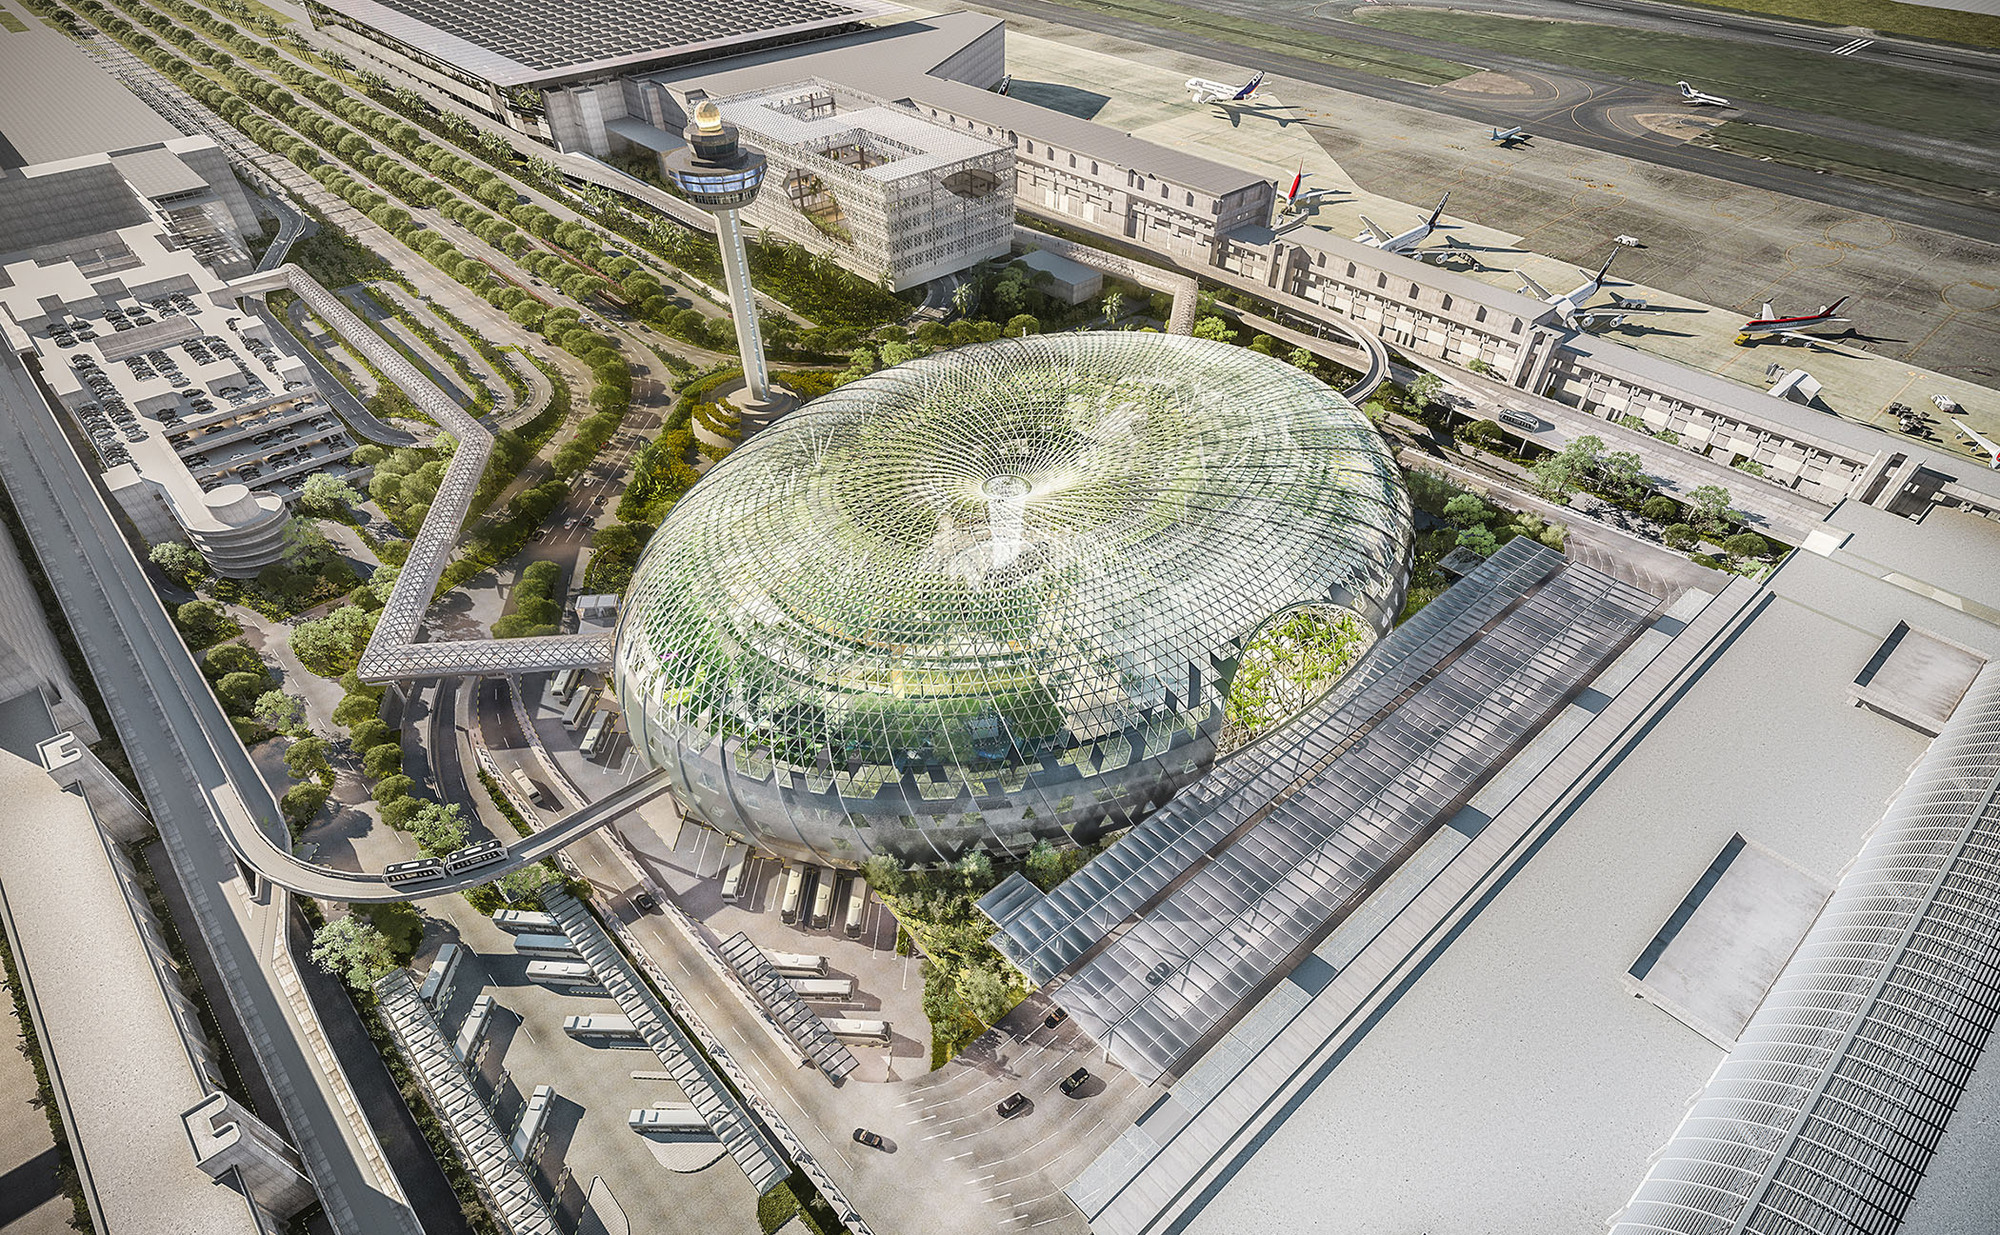 5481daaae58ecef0ed00000e_safdie-architects-design-glass-air-hub-for-singapore-changi-airport_jewel_changi_airport_aerial_view_cp